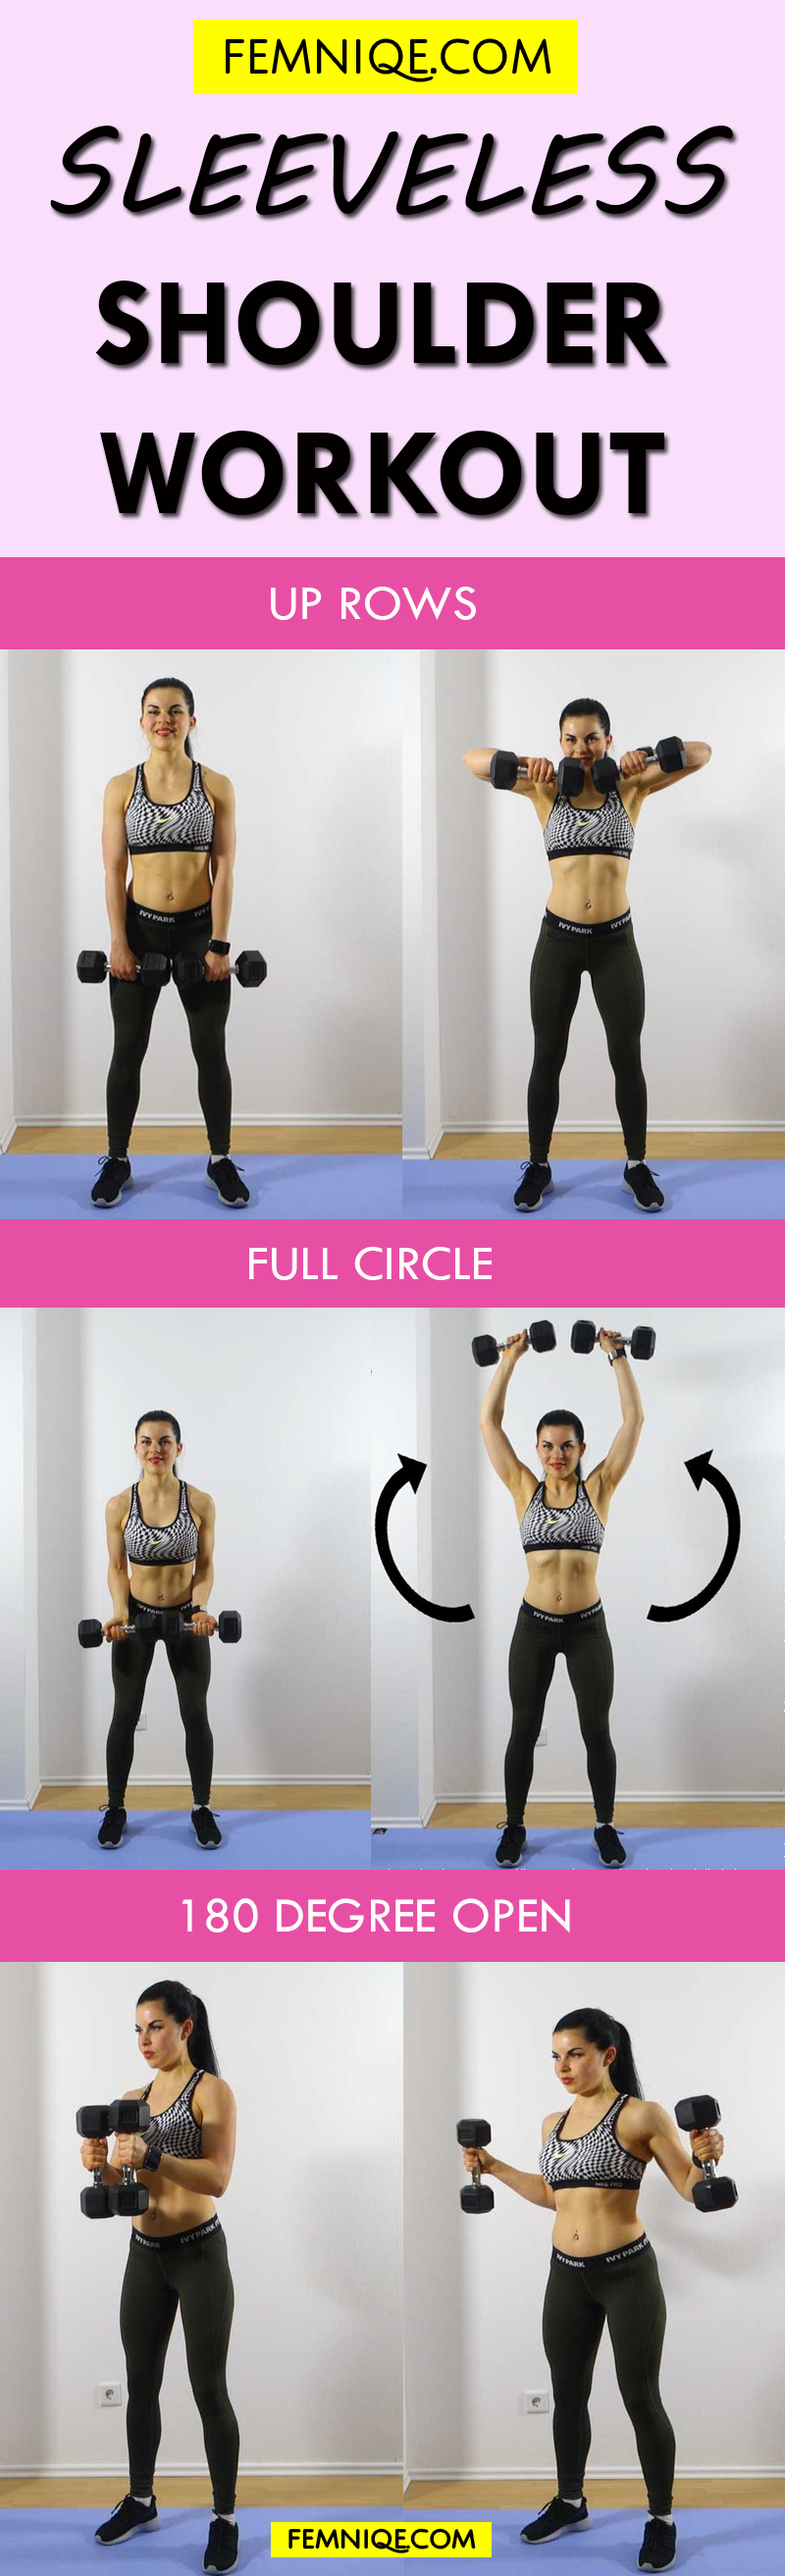 Shoulder Workouts For Women 3 Moves To Make Them Sleek y